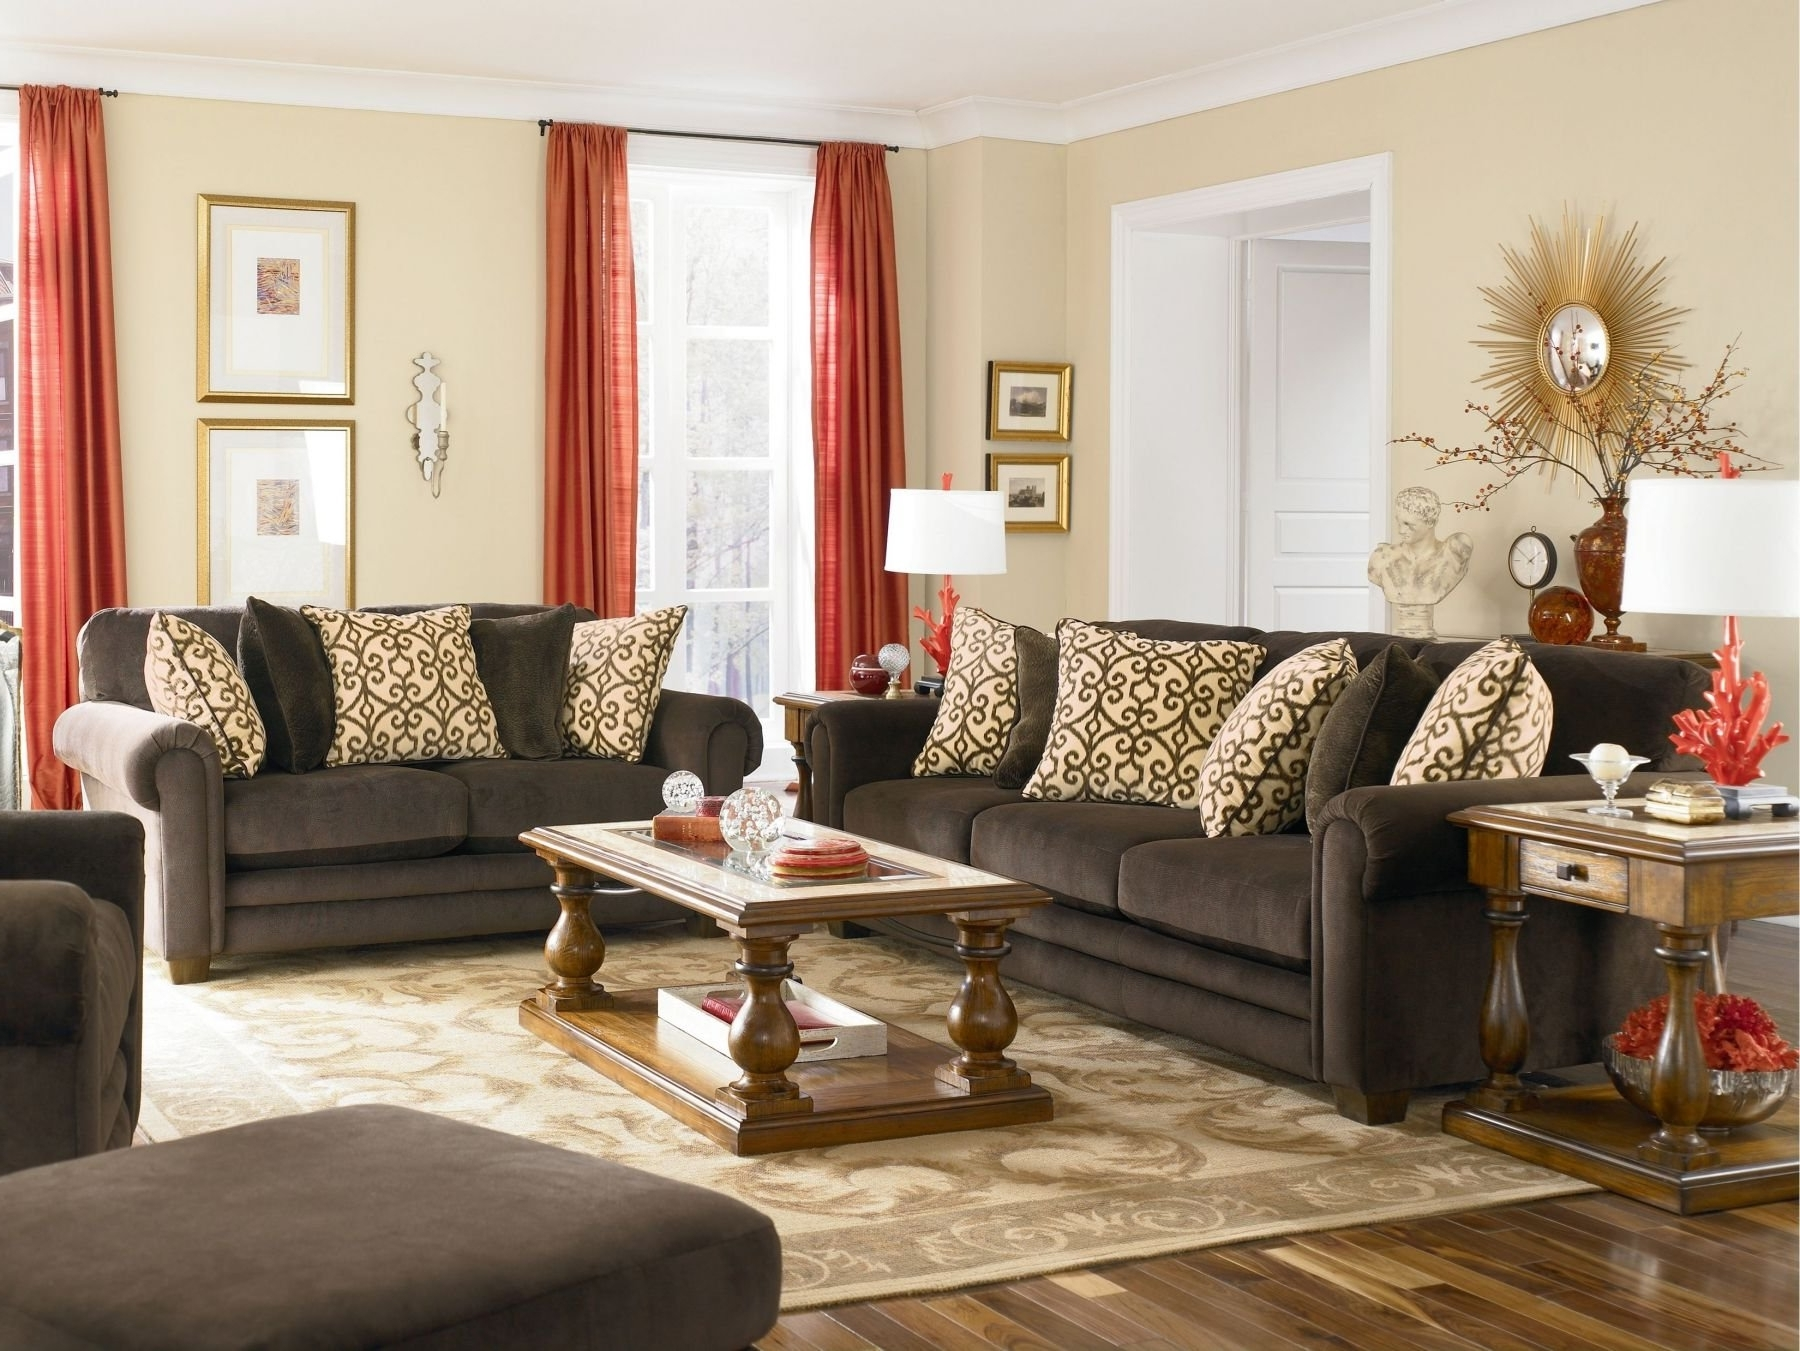 Brown Couch Wall Accents With Current Accent Wall With Brown Furniture Designedbrown Carving (Gallery 4 of 15)